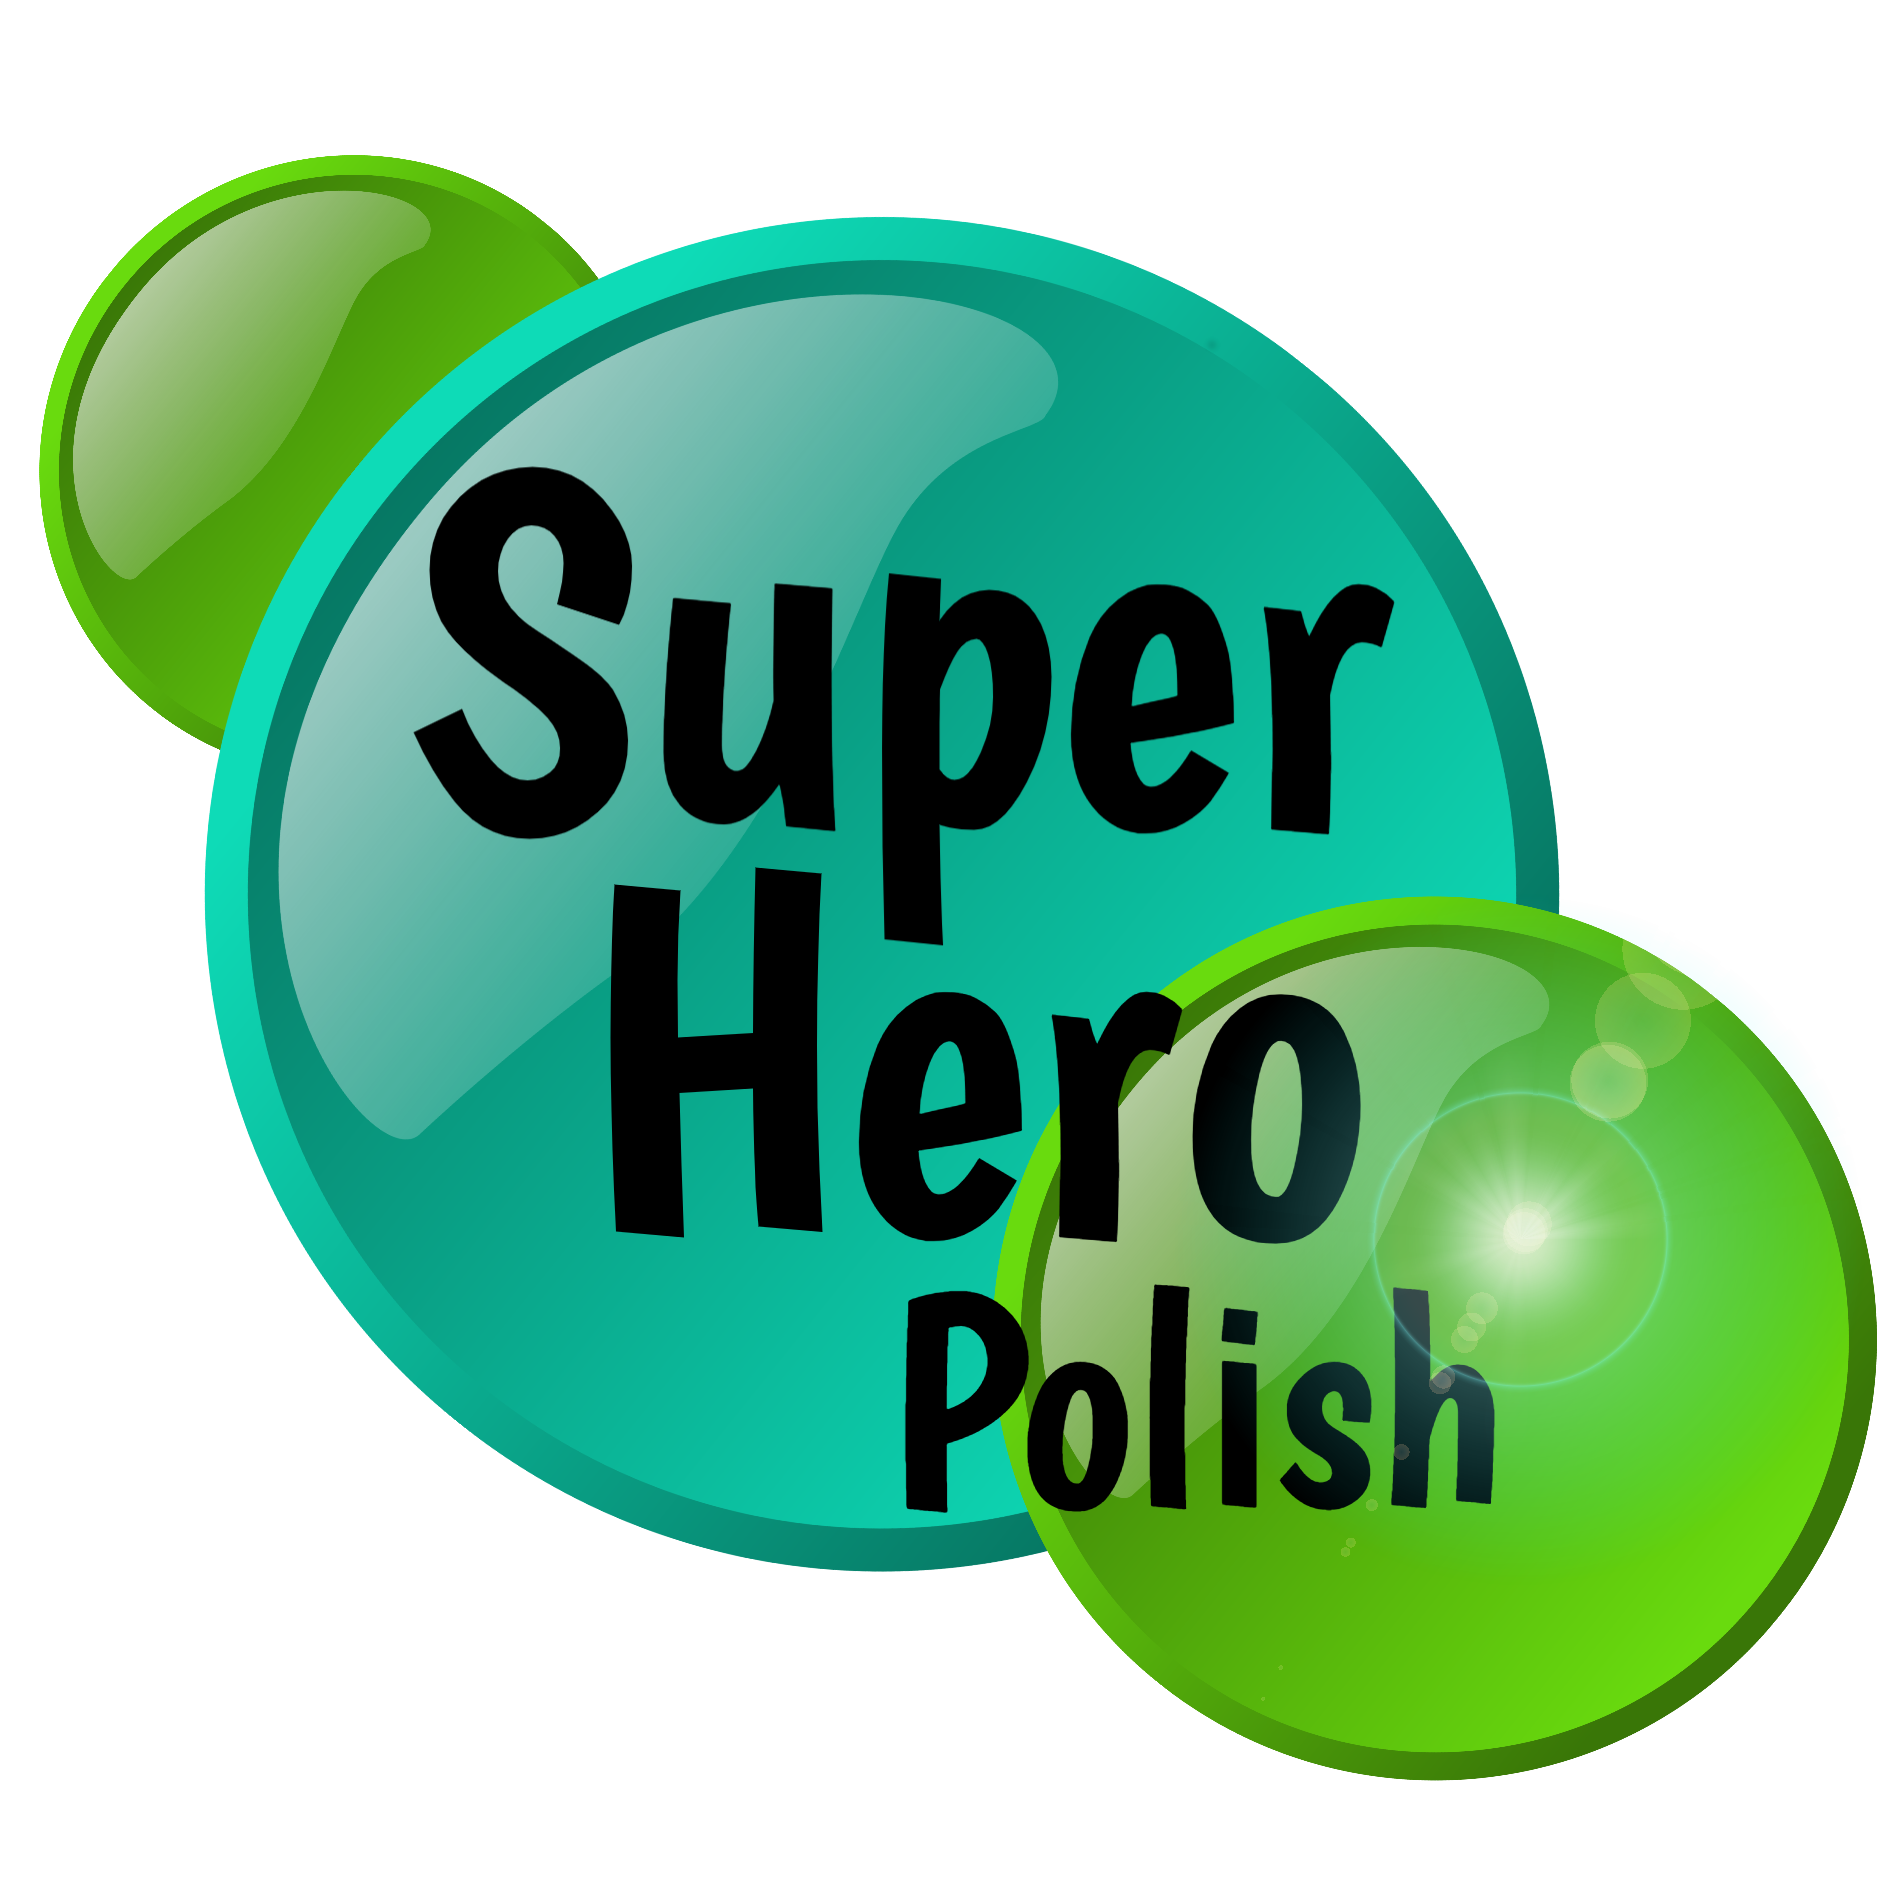 Superhero Polish